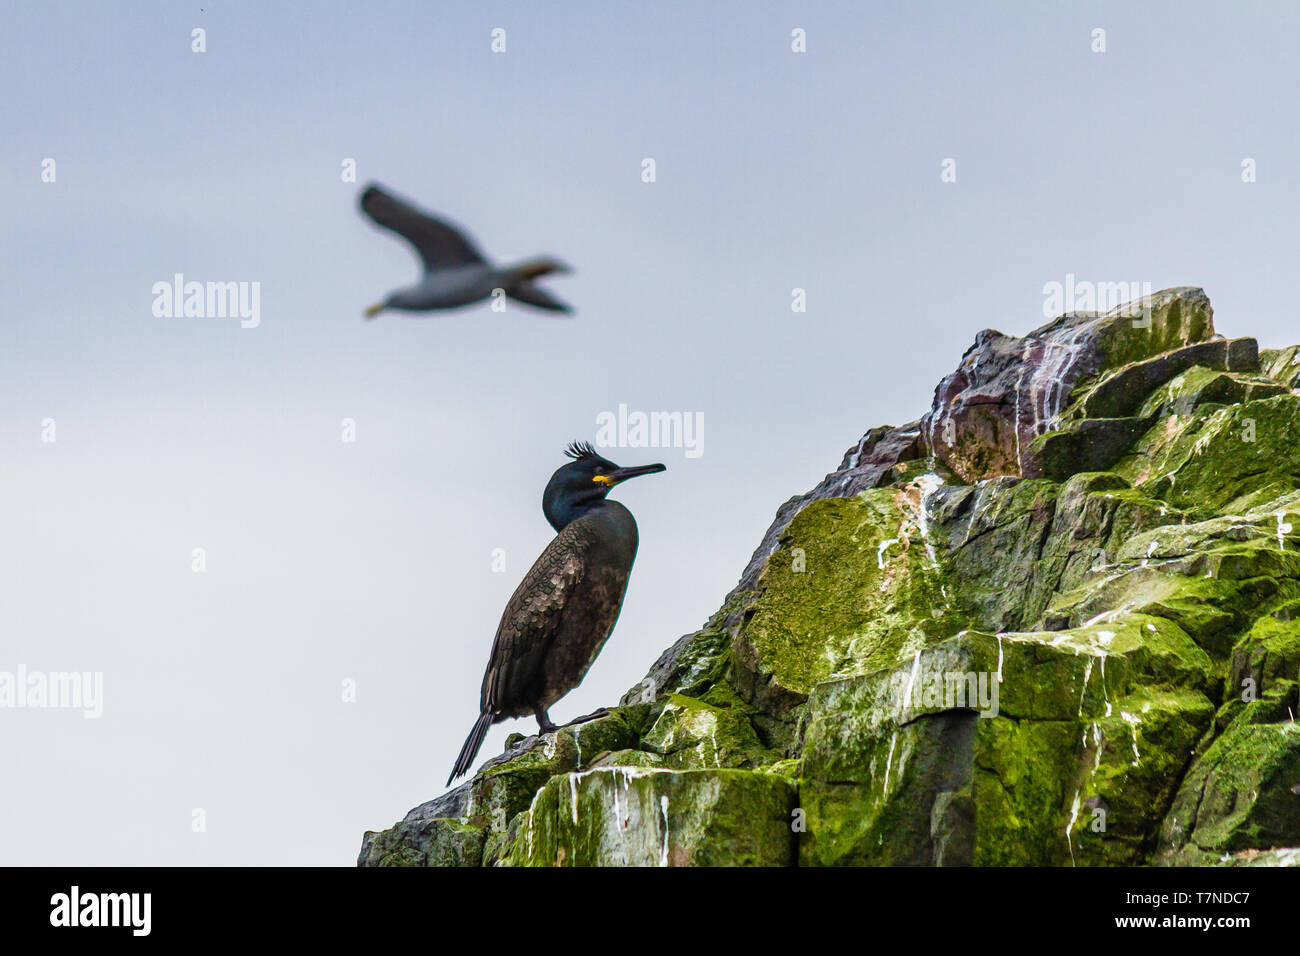 A Common or European Shag standing alone on a rock on the Farne Islands, Northumberland, UK. May 2018. - Stock Image